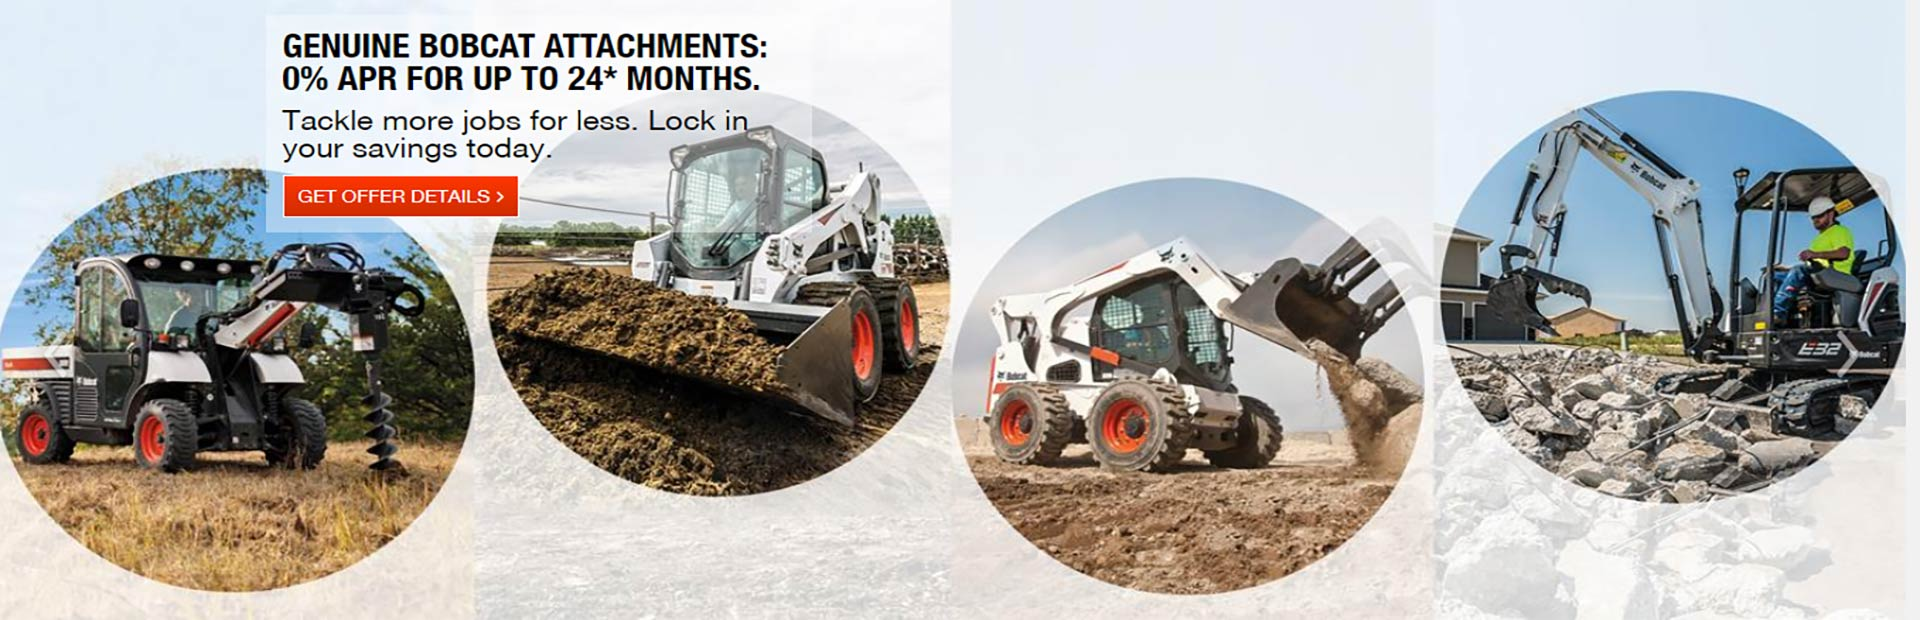 Genuine Bobcat Attachments: 0% APR for up to 24* Months. Get Offer Details.